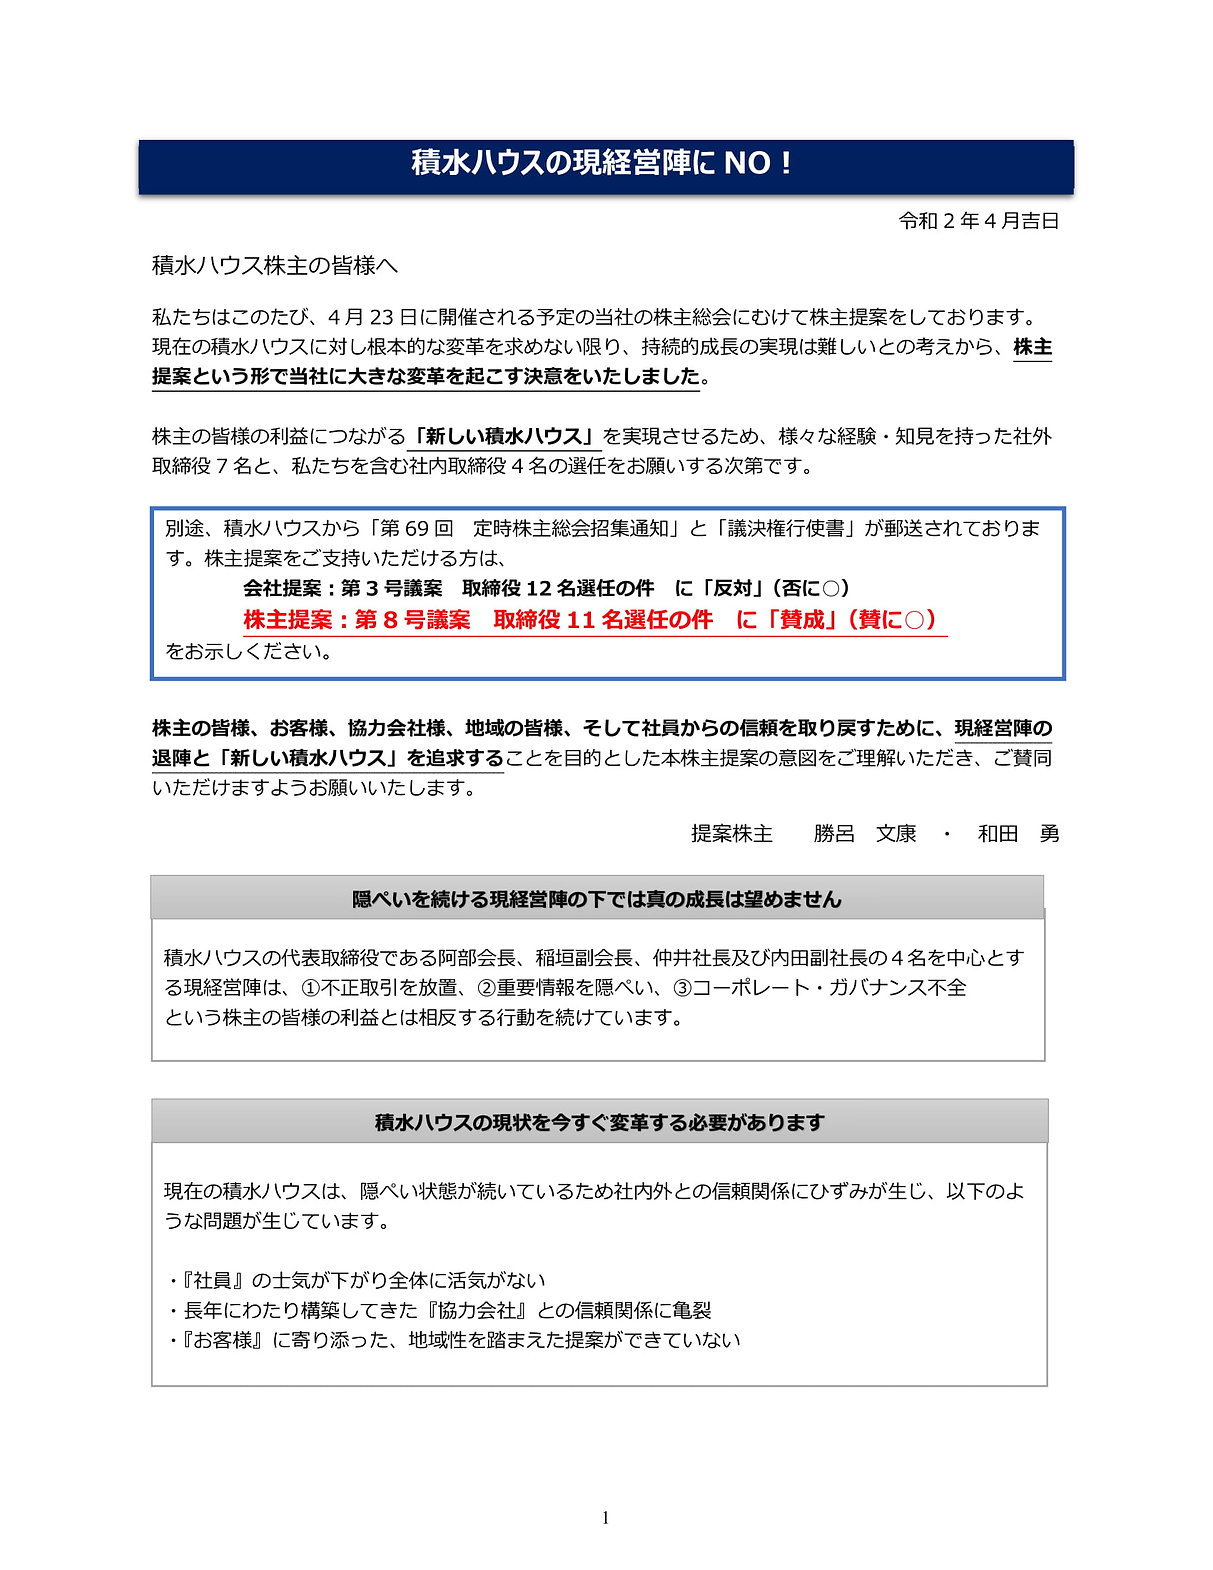 Voting Instructions (J)_2020_04_07-1.jpg